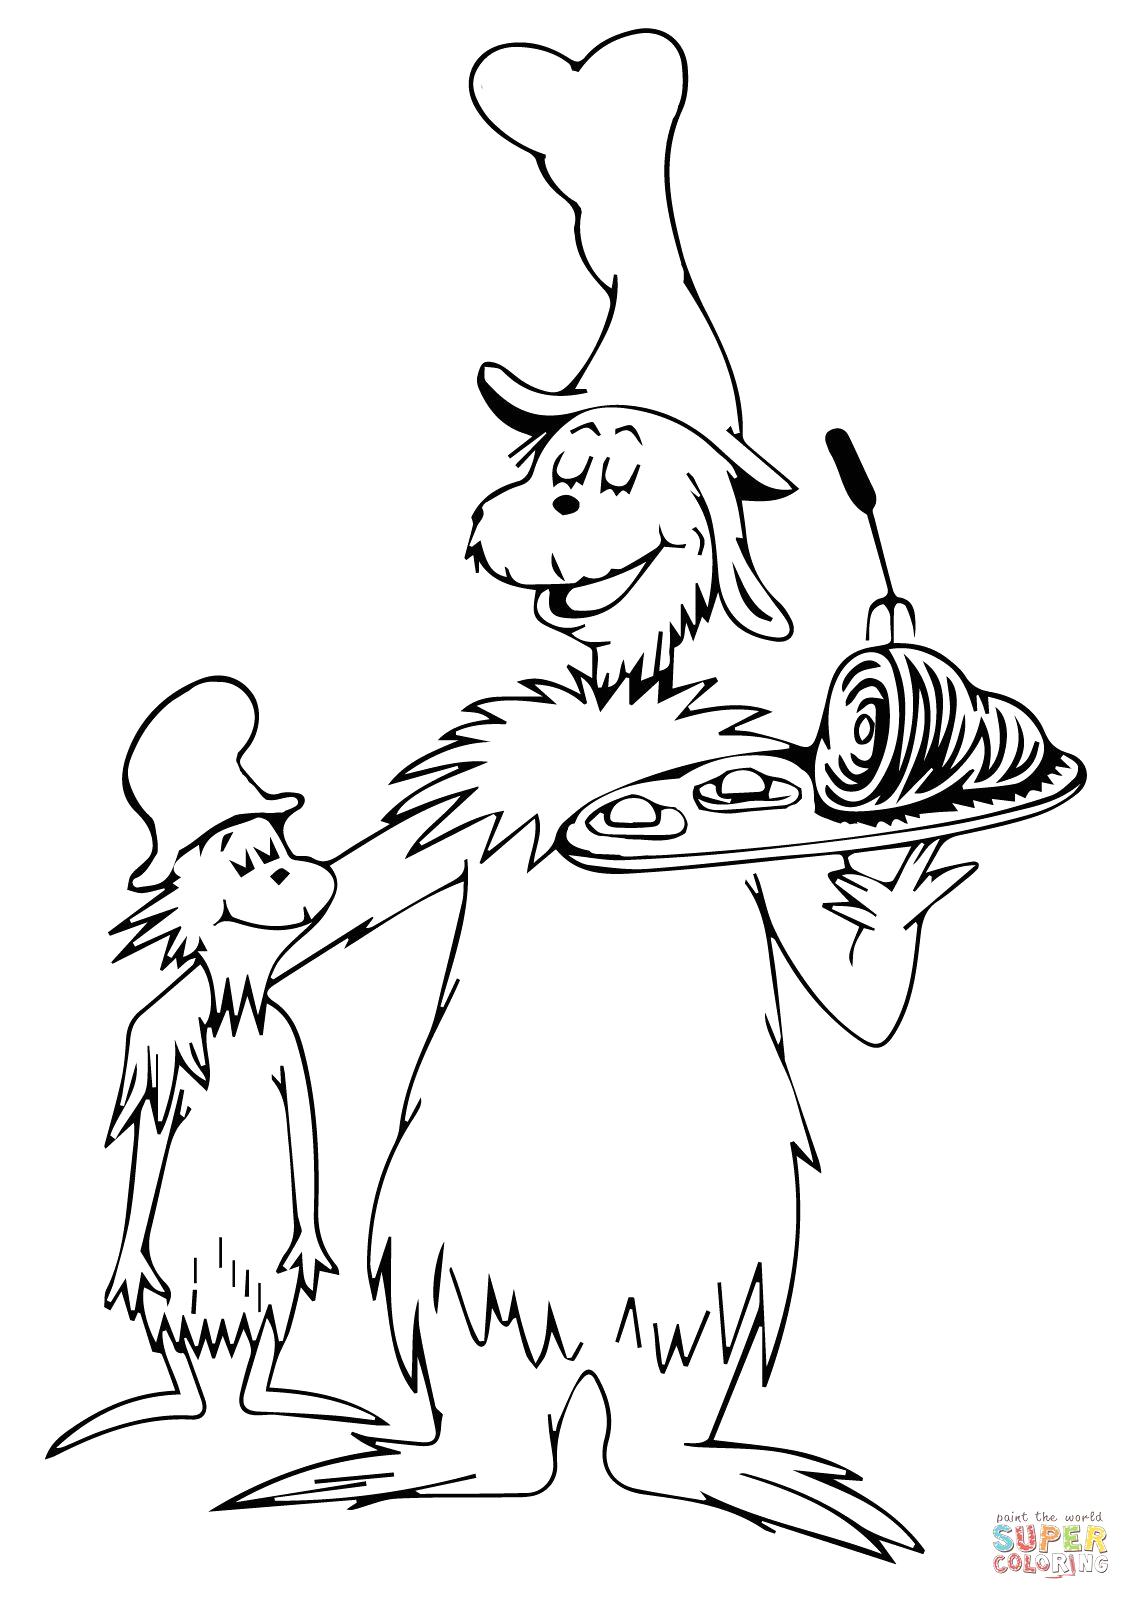 Free Printable Green Eggs and Ham Coloring Pages Green Eggs and Ham Coloring Page Coloring Home